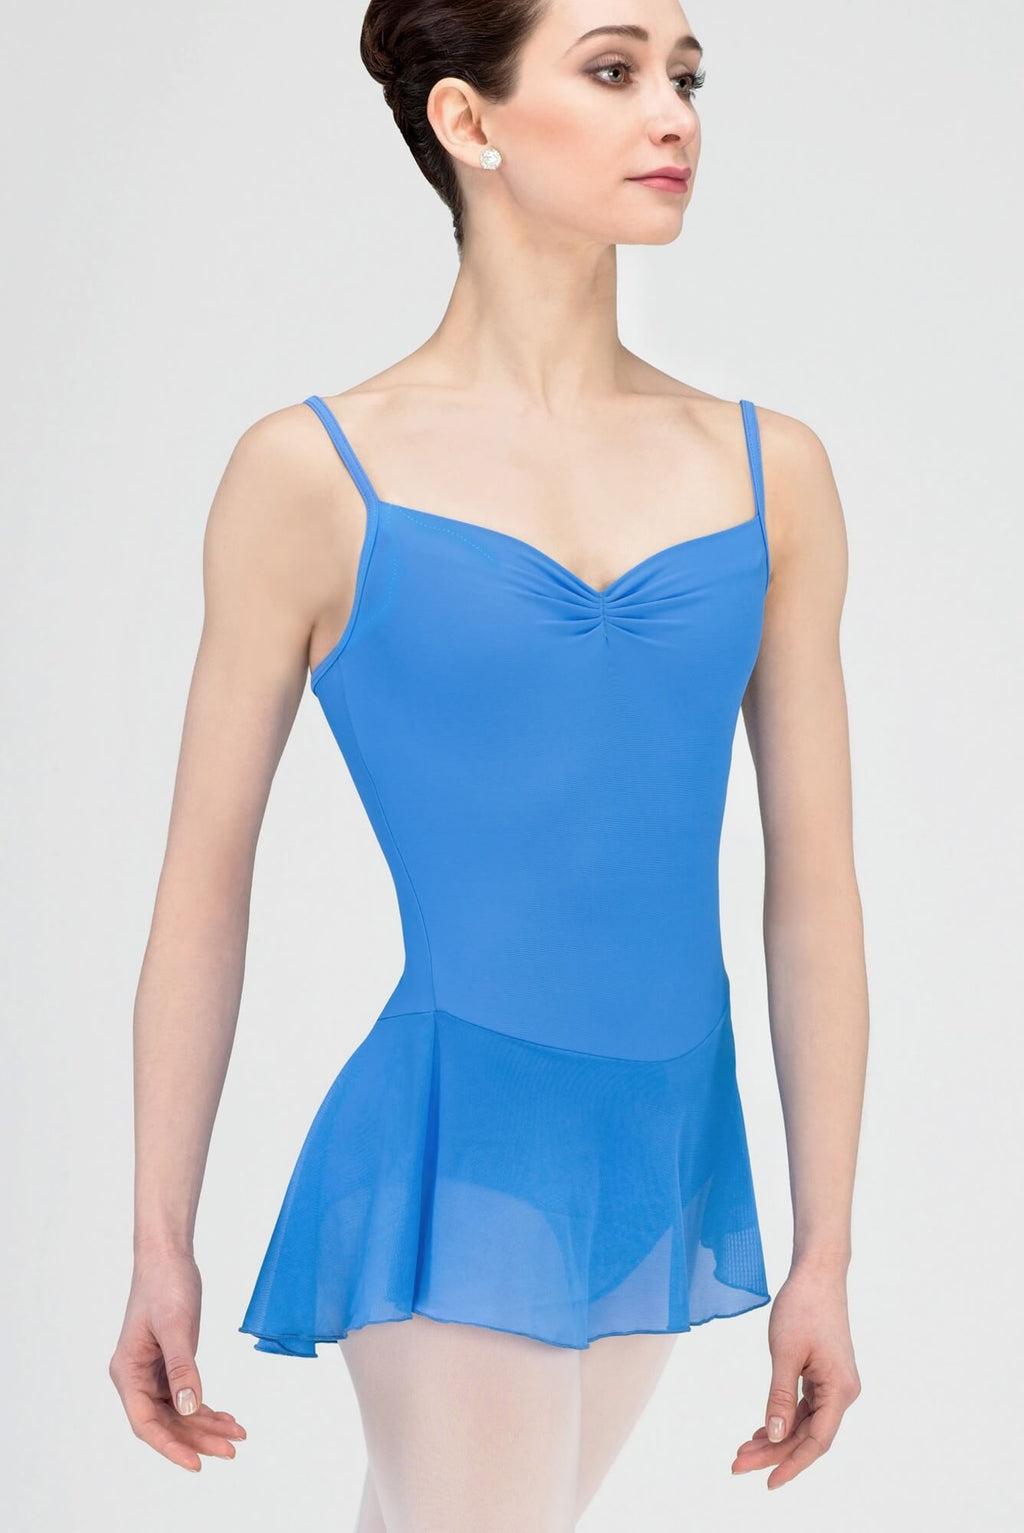 Wear Moi Ballerine Camisole Dress